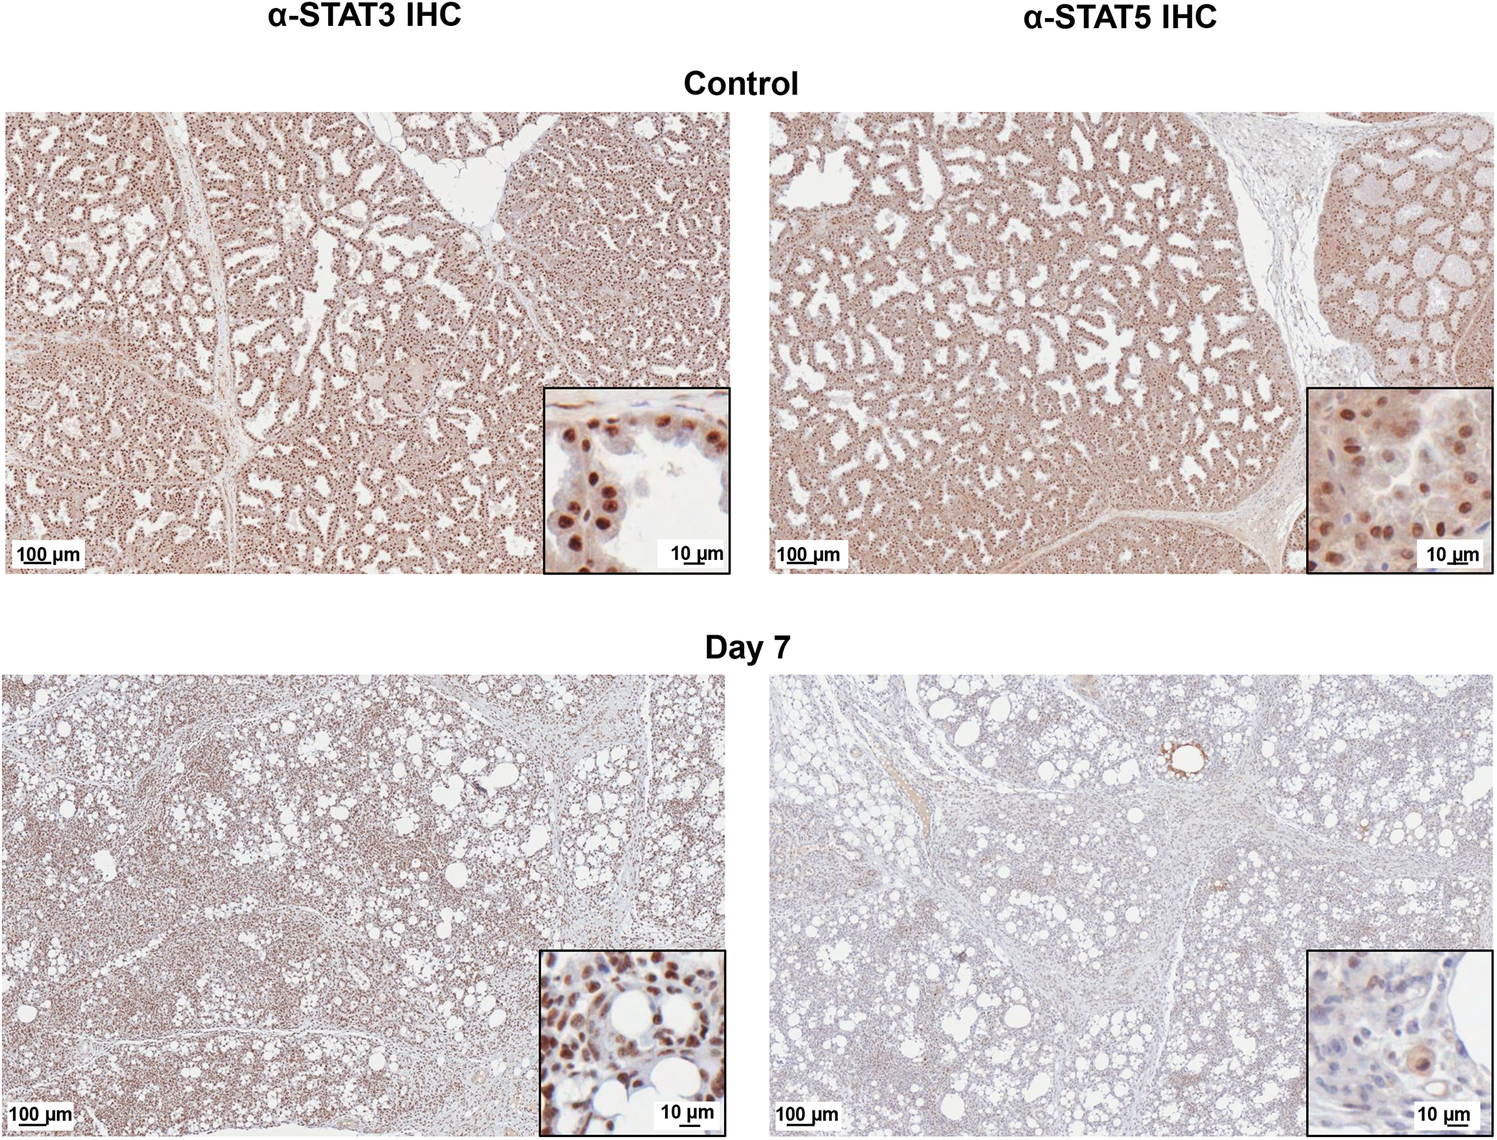 STAT5 protein is decreased and STAT3 protein is nuclear localized in H1N1+ Mammary Glands.